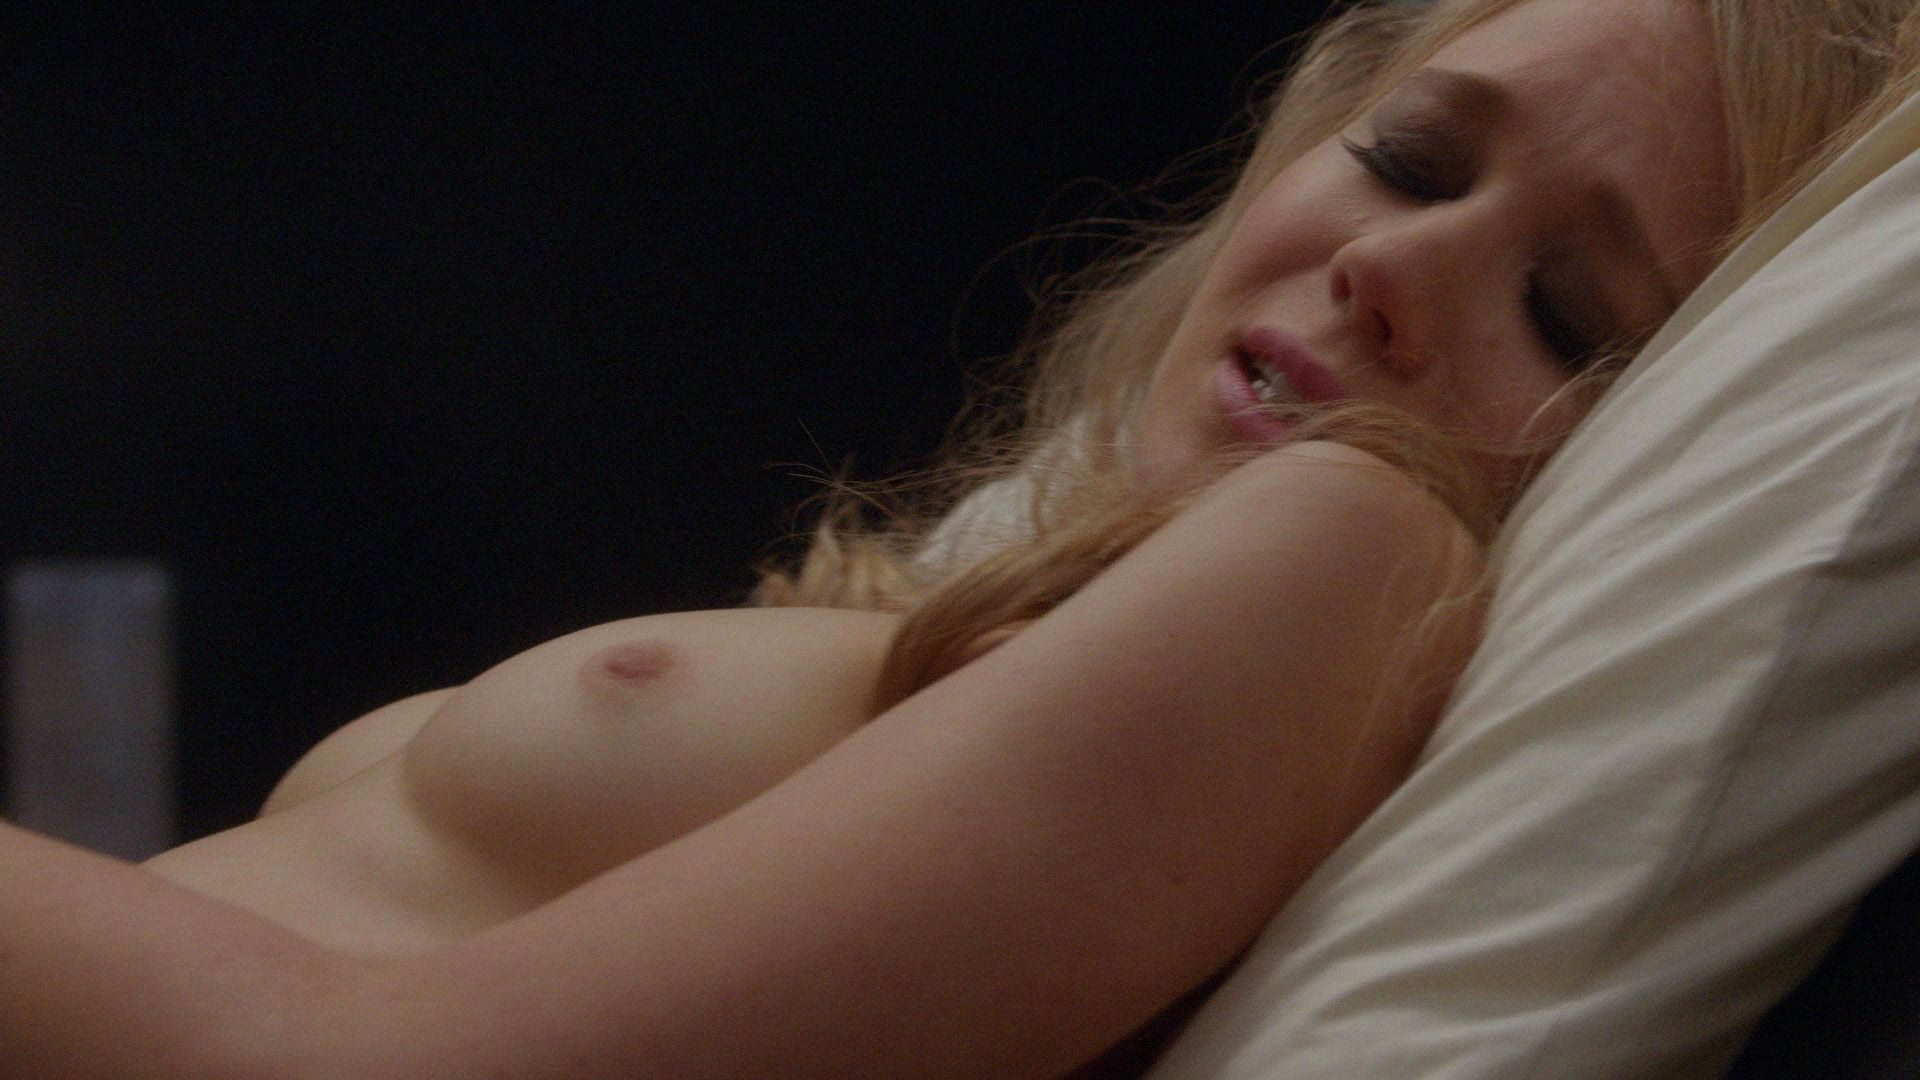 Kristen hager ass and tits